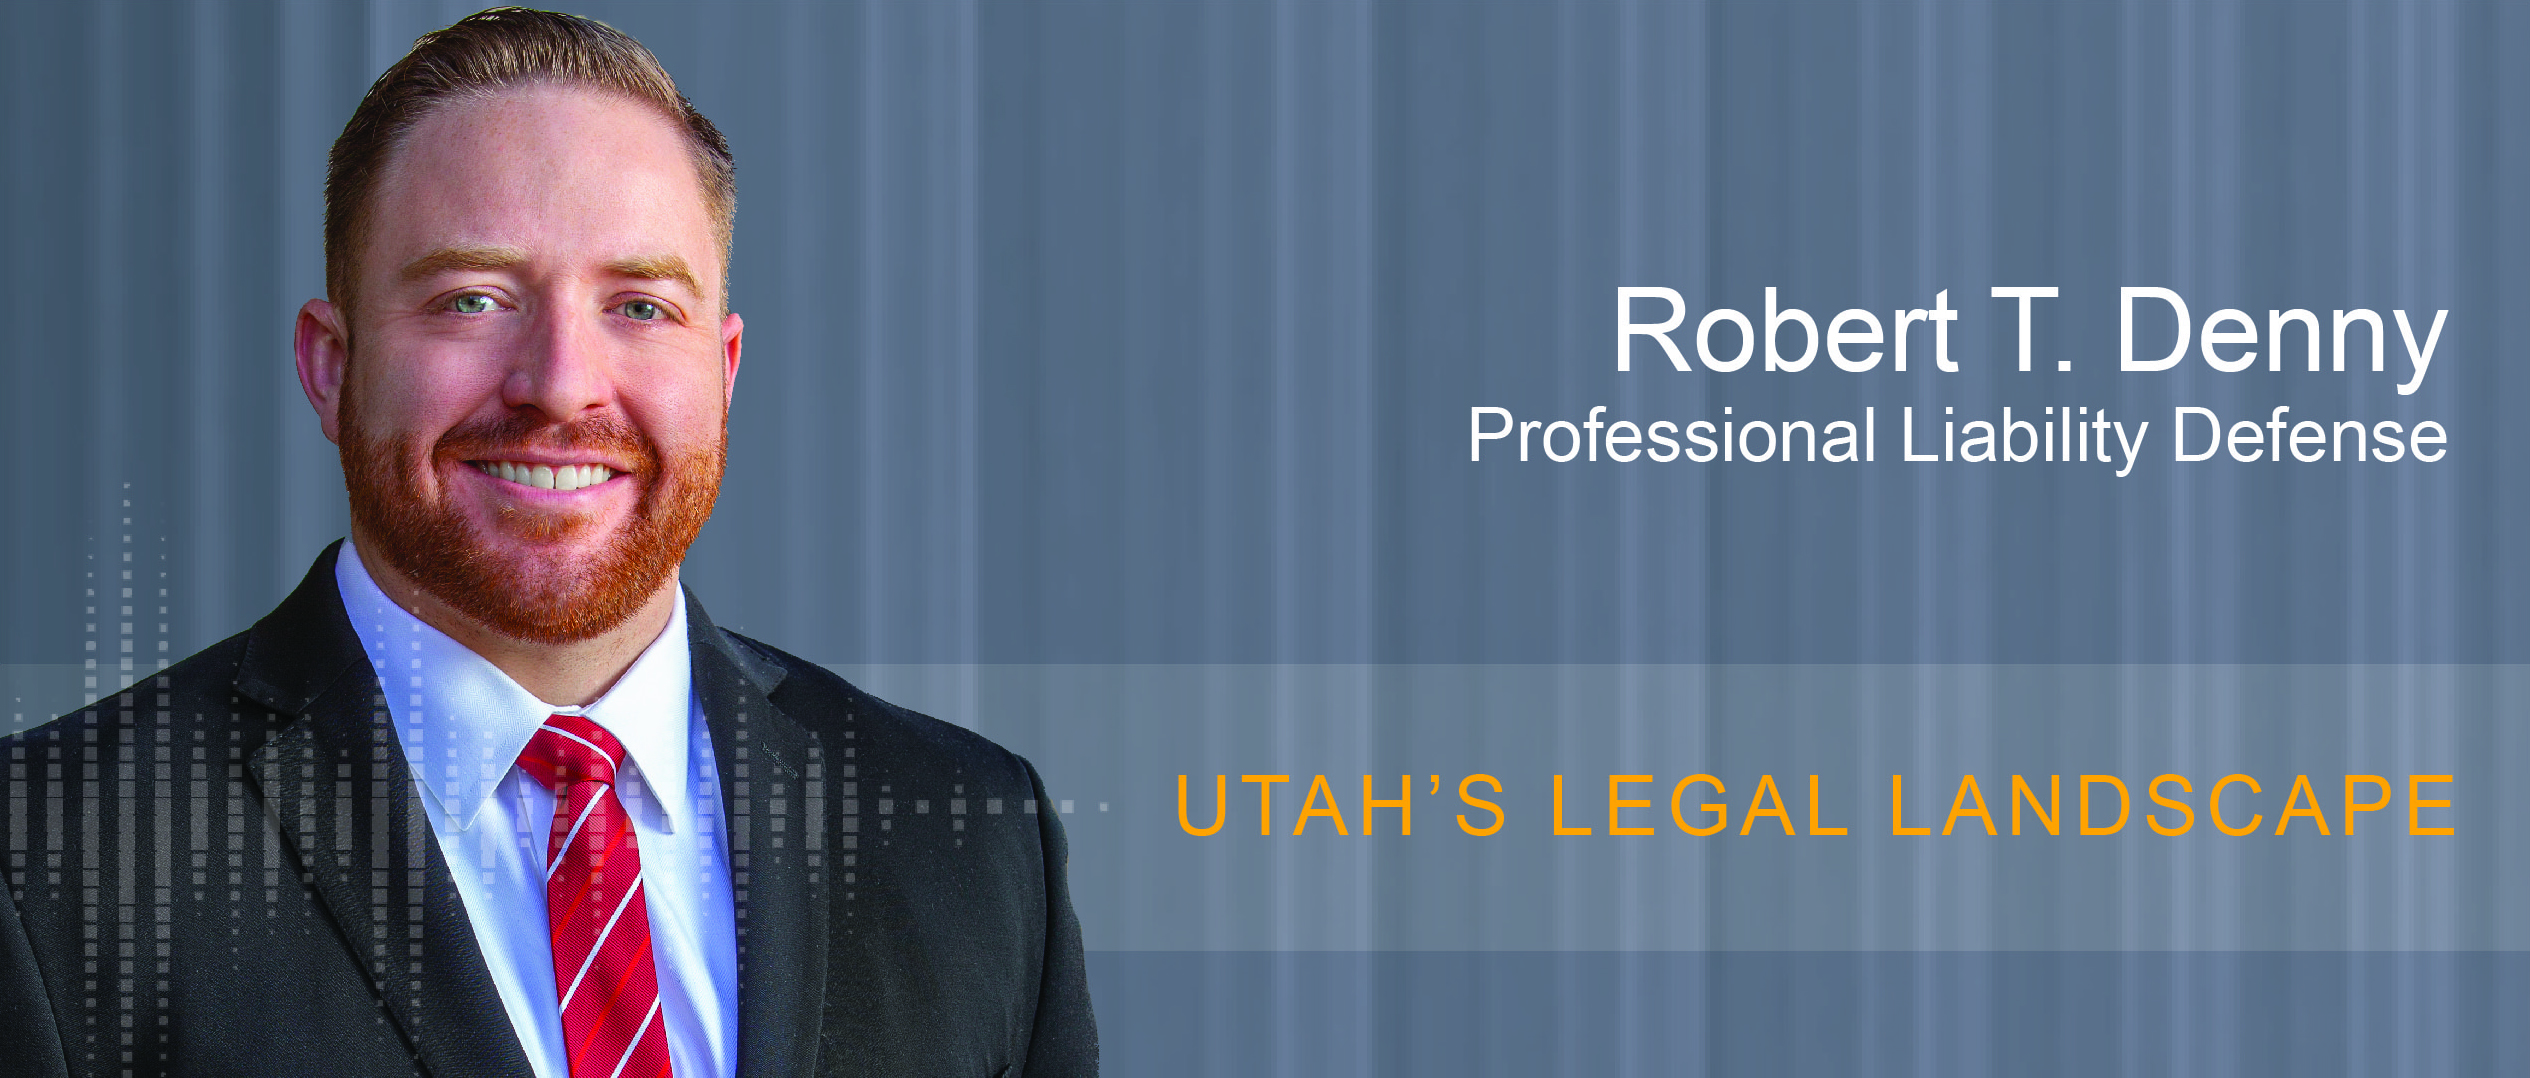 Robert Denny - Counselors Corner - Professional Liability Defense